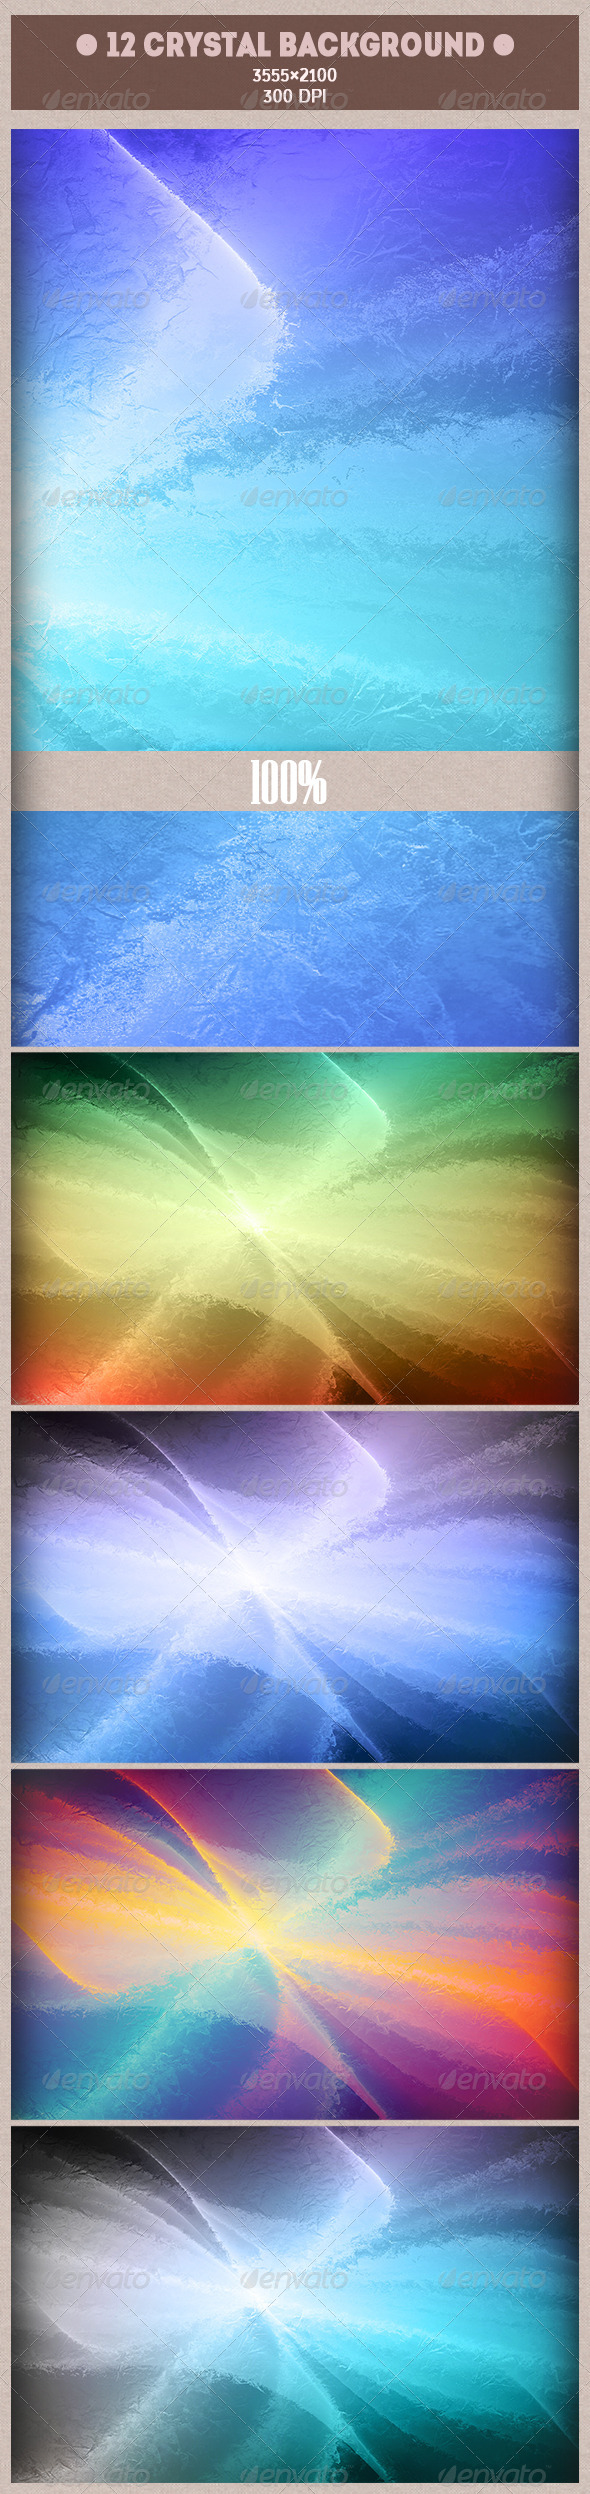 GraphicRiver 12 Crystal Background 7822860